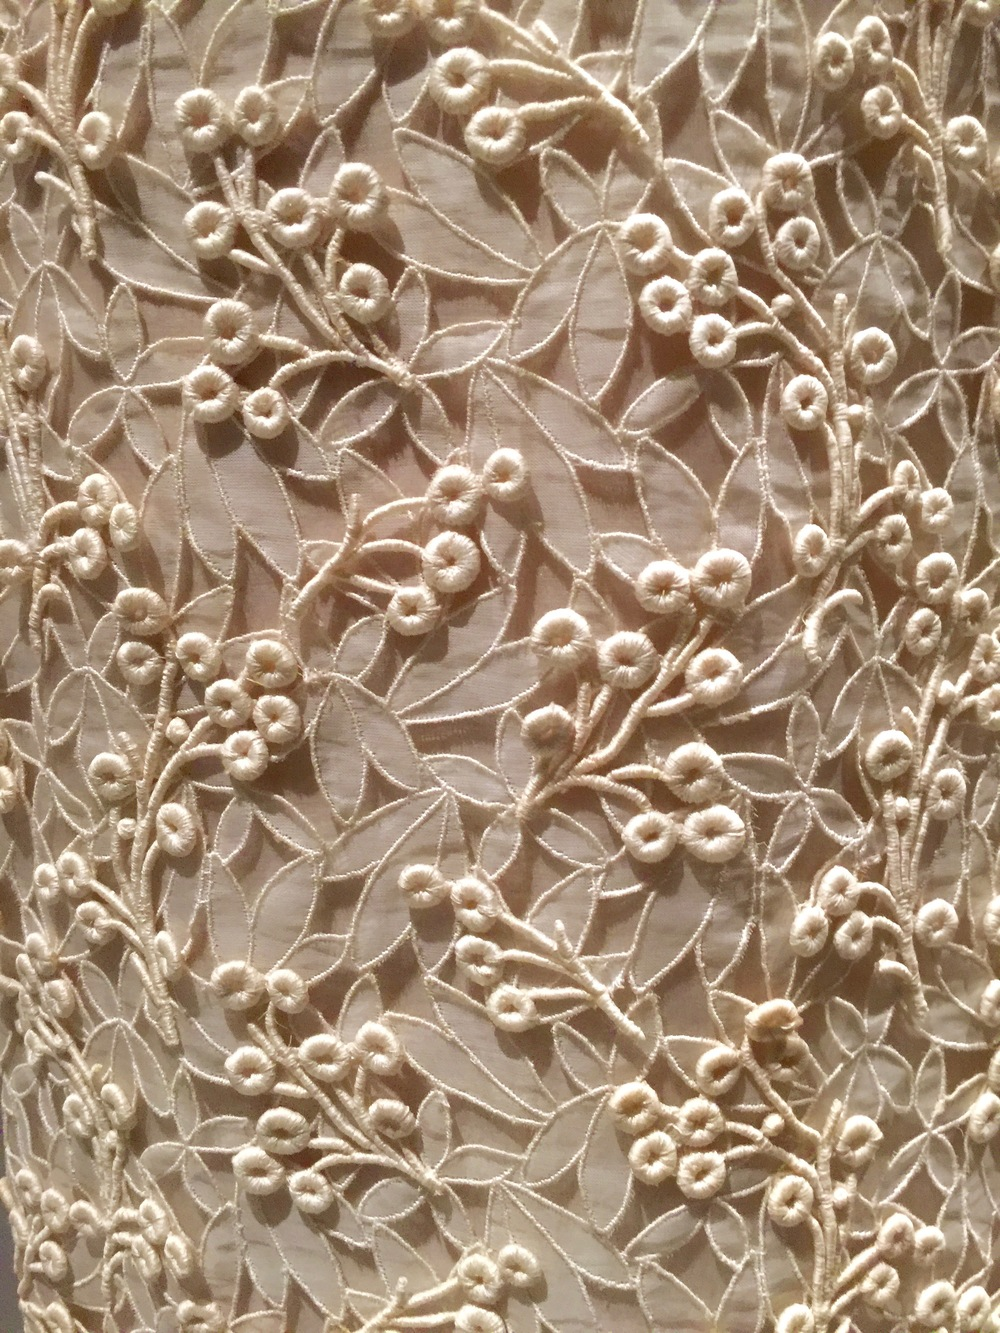 Detail of machine-embroidered cutwork hand-stitched with machine-embroidered guipure lace